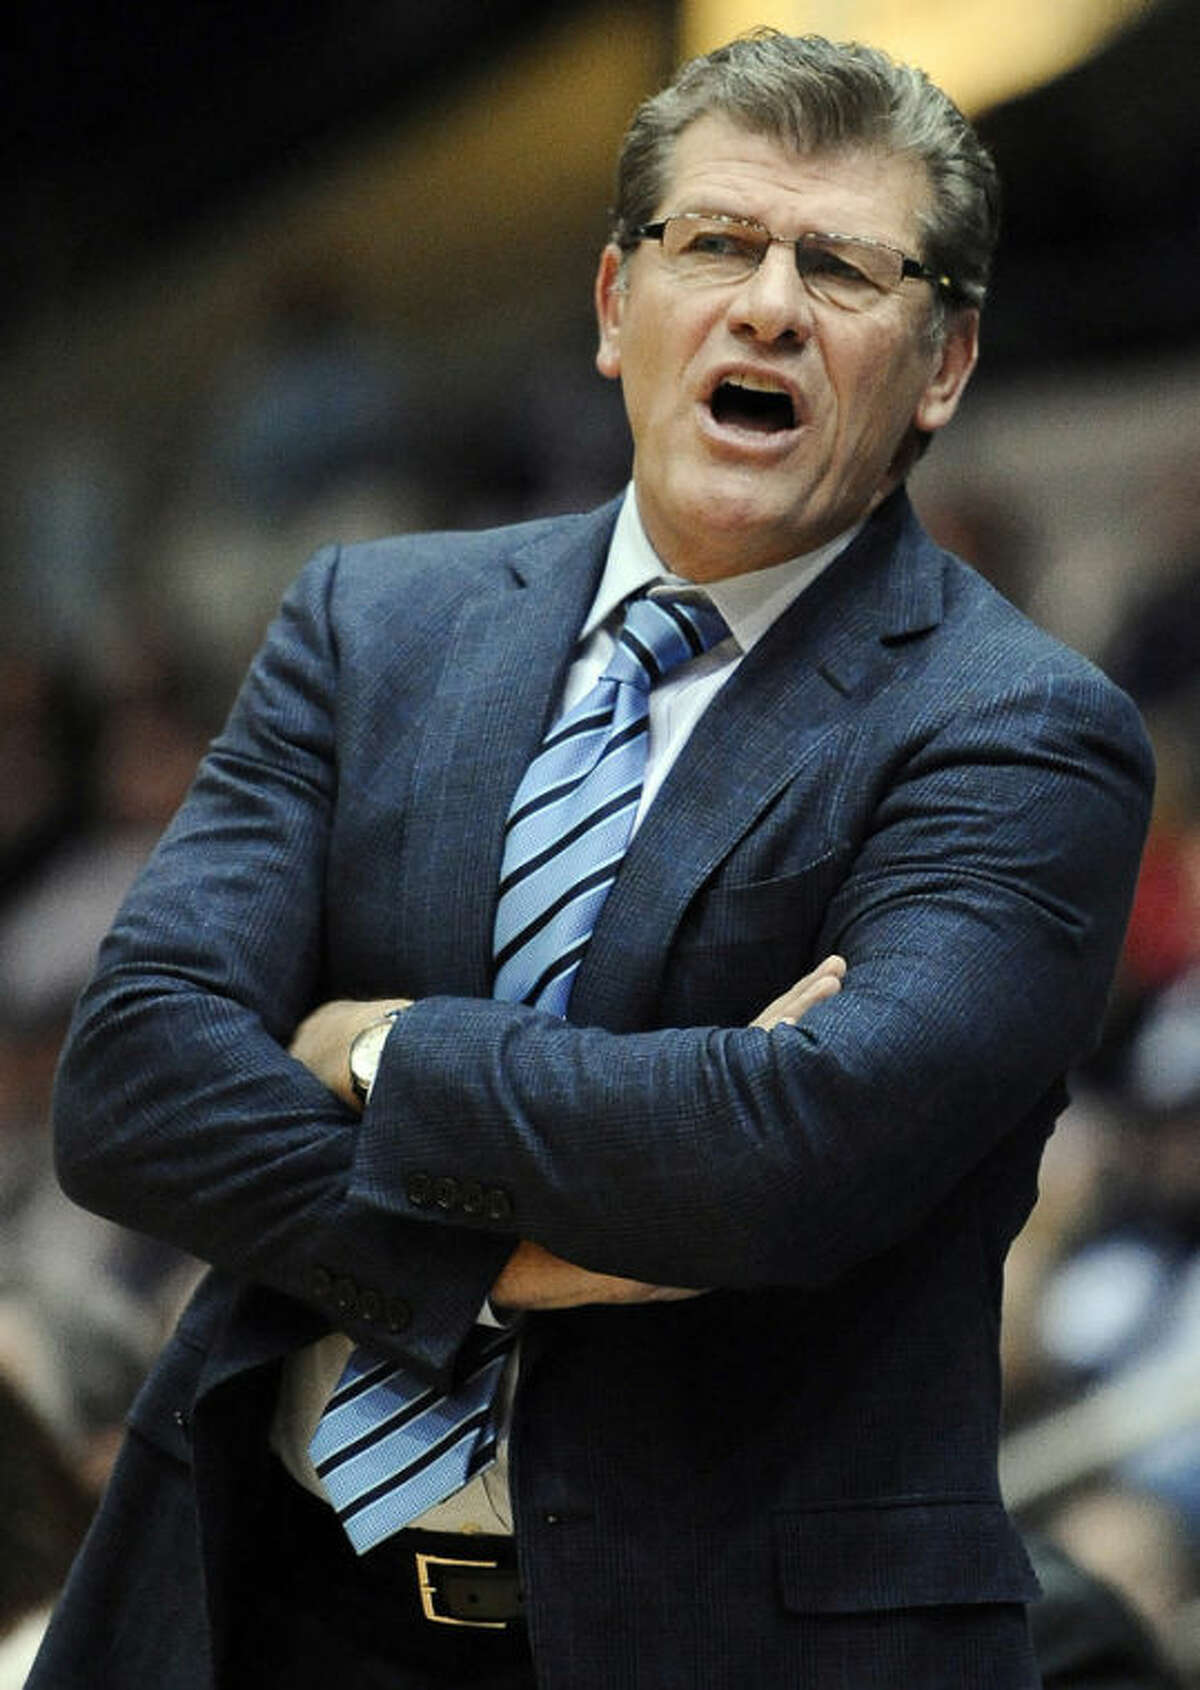 Connecticut head coach Geno Auriemma stands during the second half of an NCAA college basketball game against Ohio State, Sunday, Dec. 1, 2013, in Springfield, Mass. Connecticut won 70-49. (AP Photo/Jessica Hill)